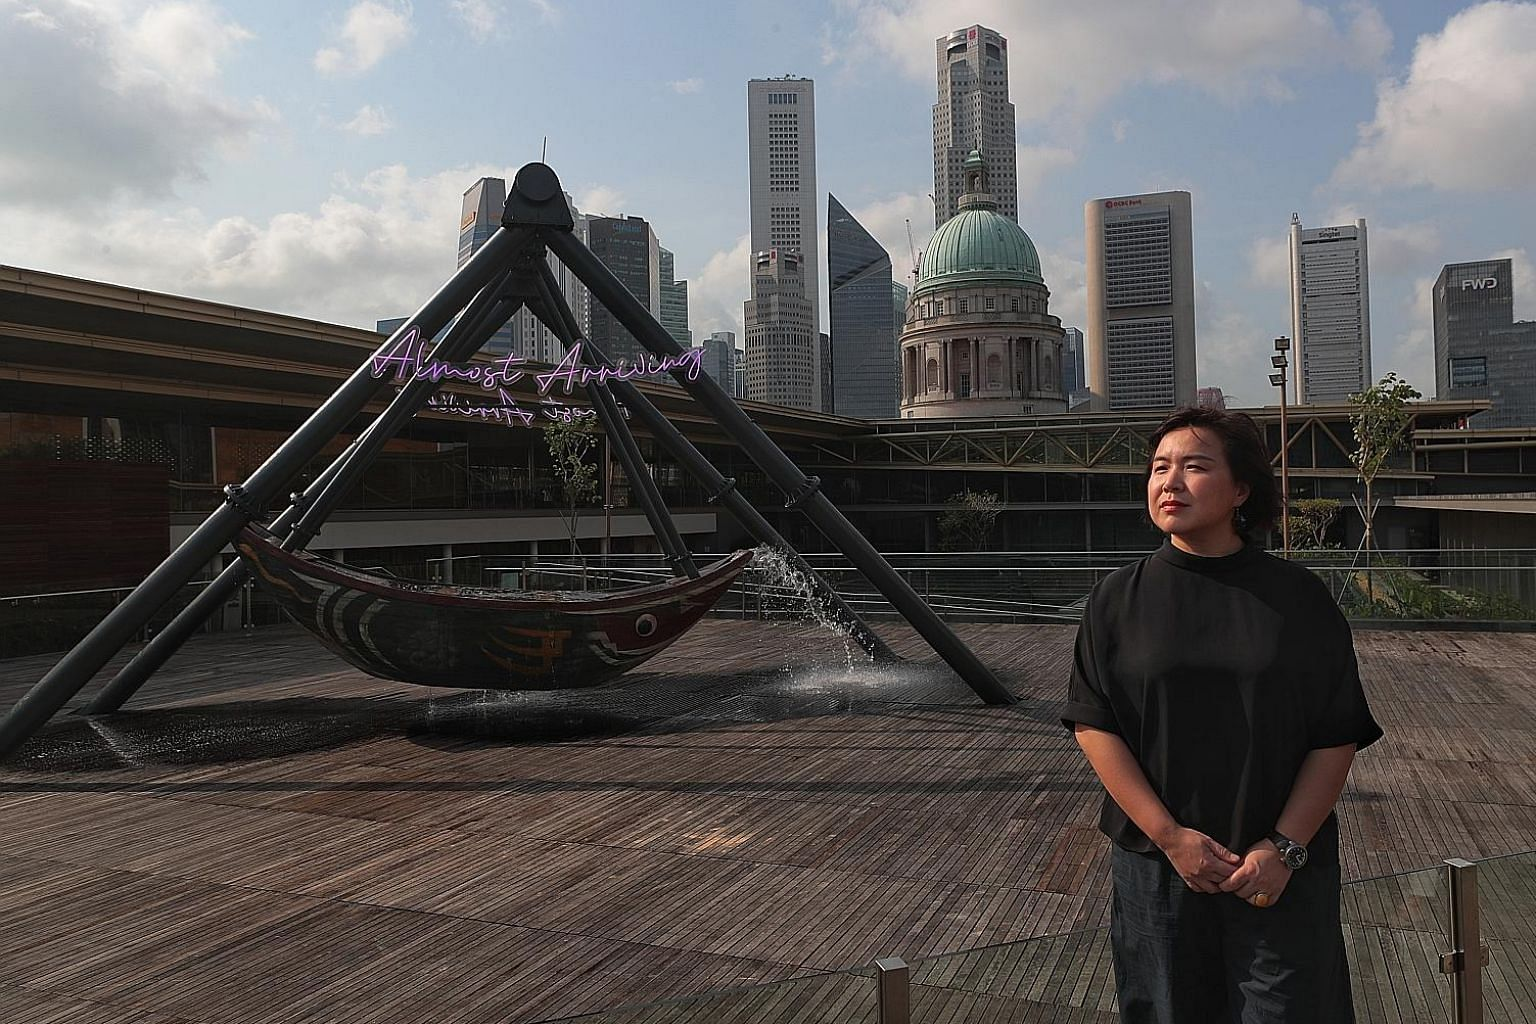 Beijing-based artist Cao Fei with the 5m-tall installation, Fu Cha, on the roof of the National Gallery Singapore.